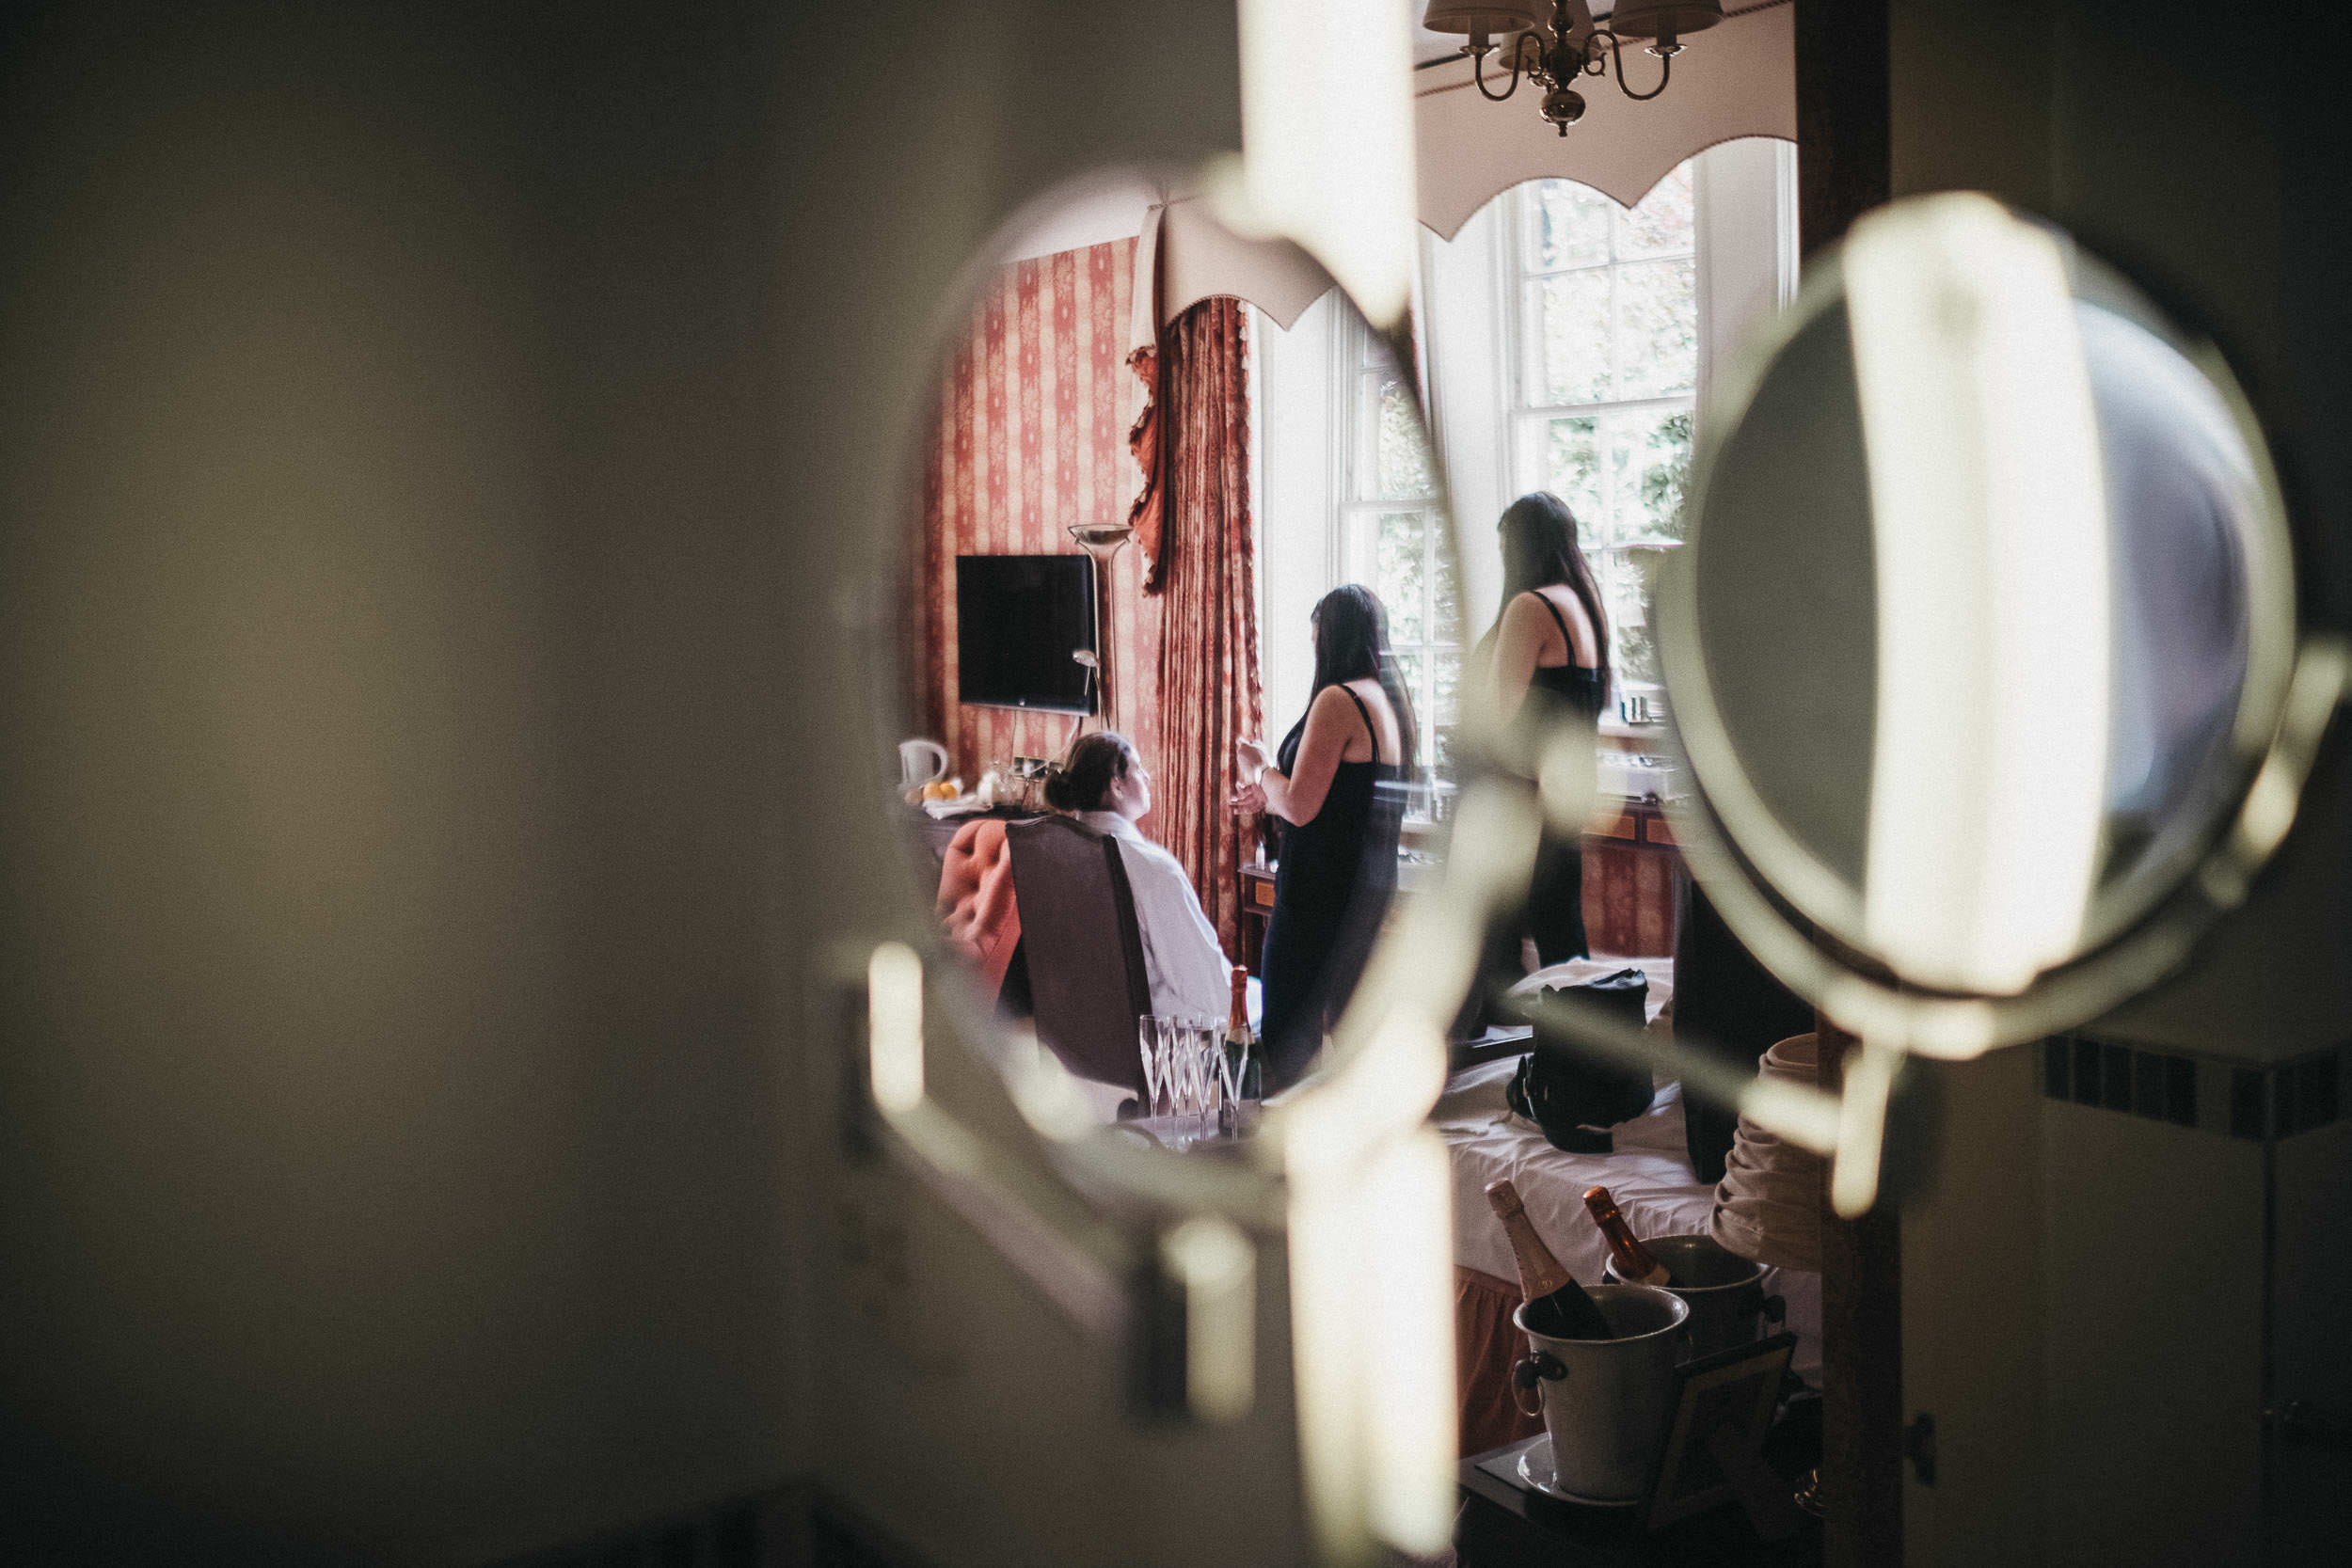 Reflections of bride getting ready in mirror